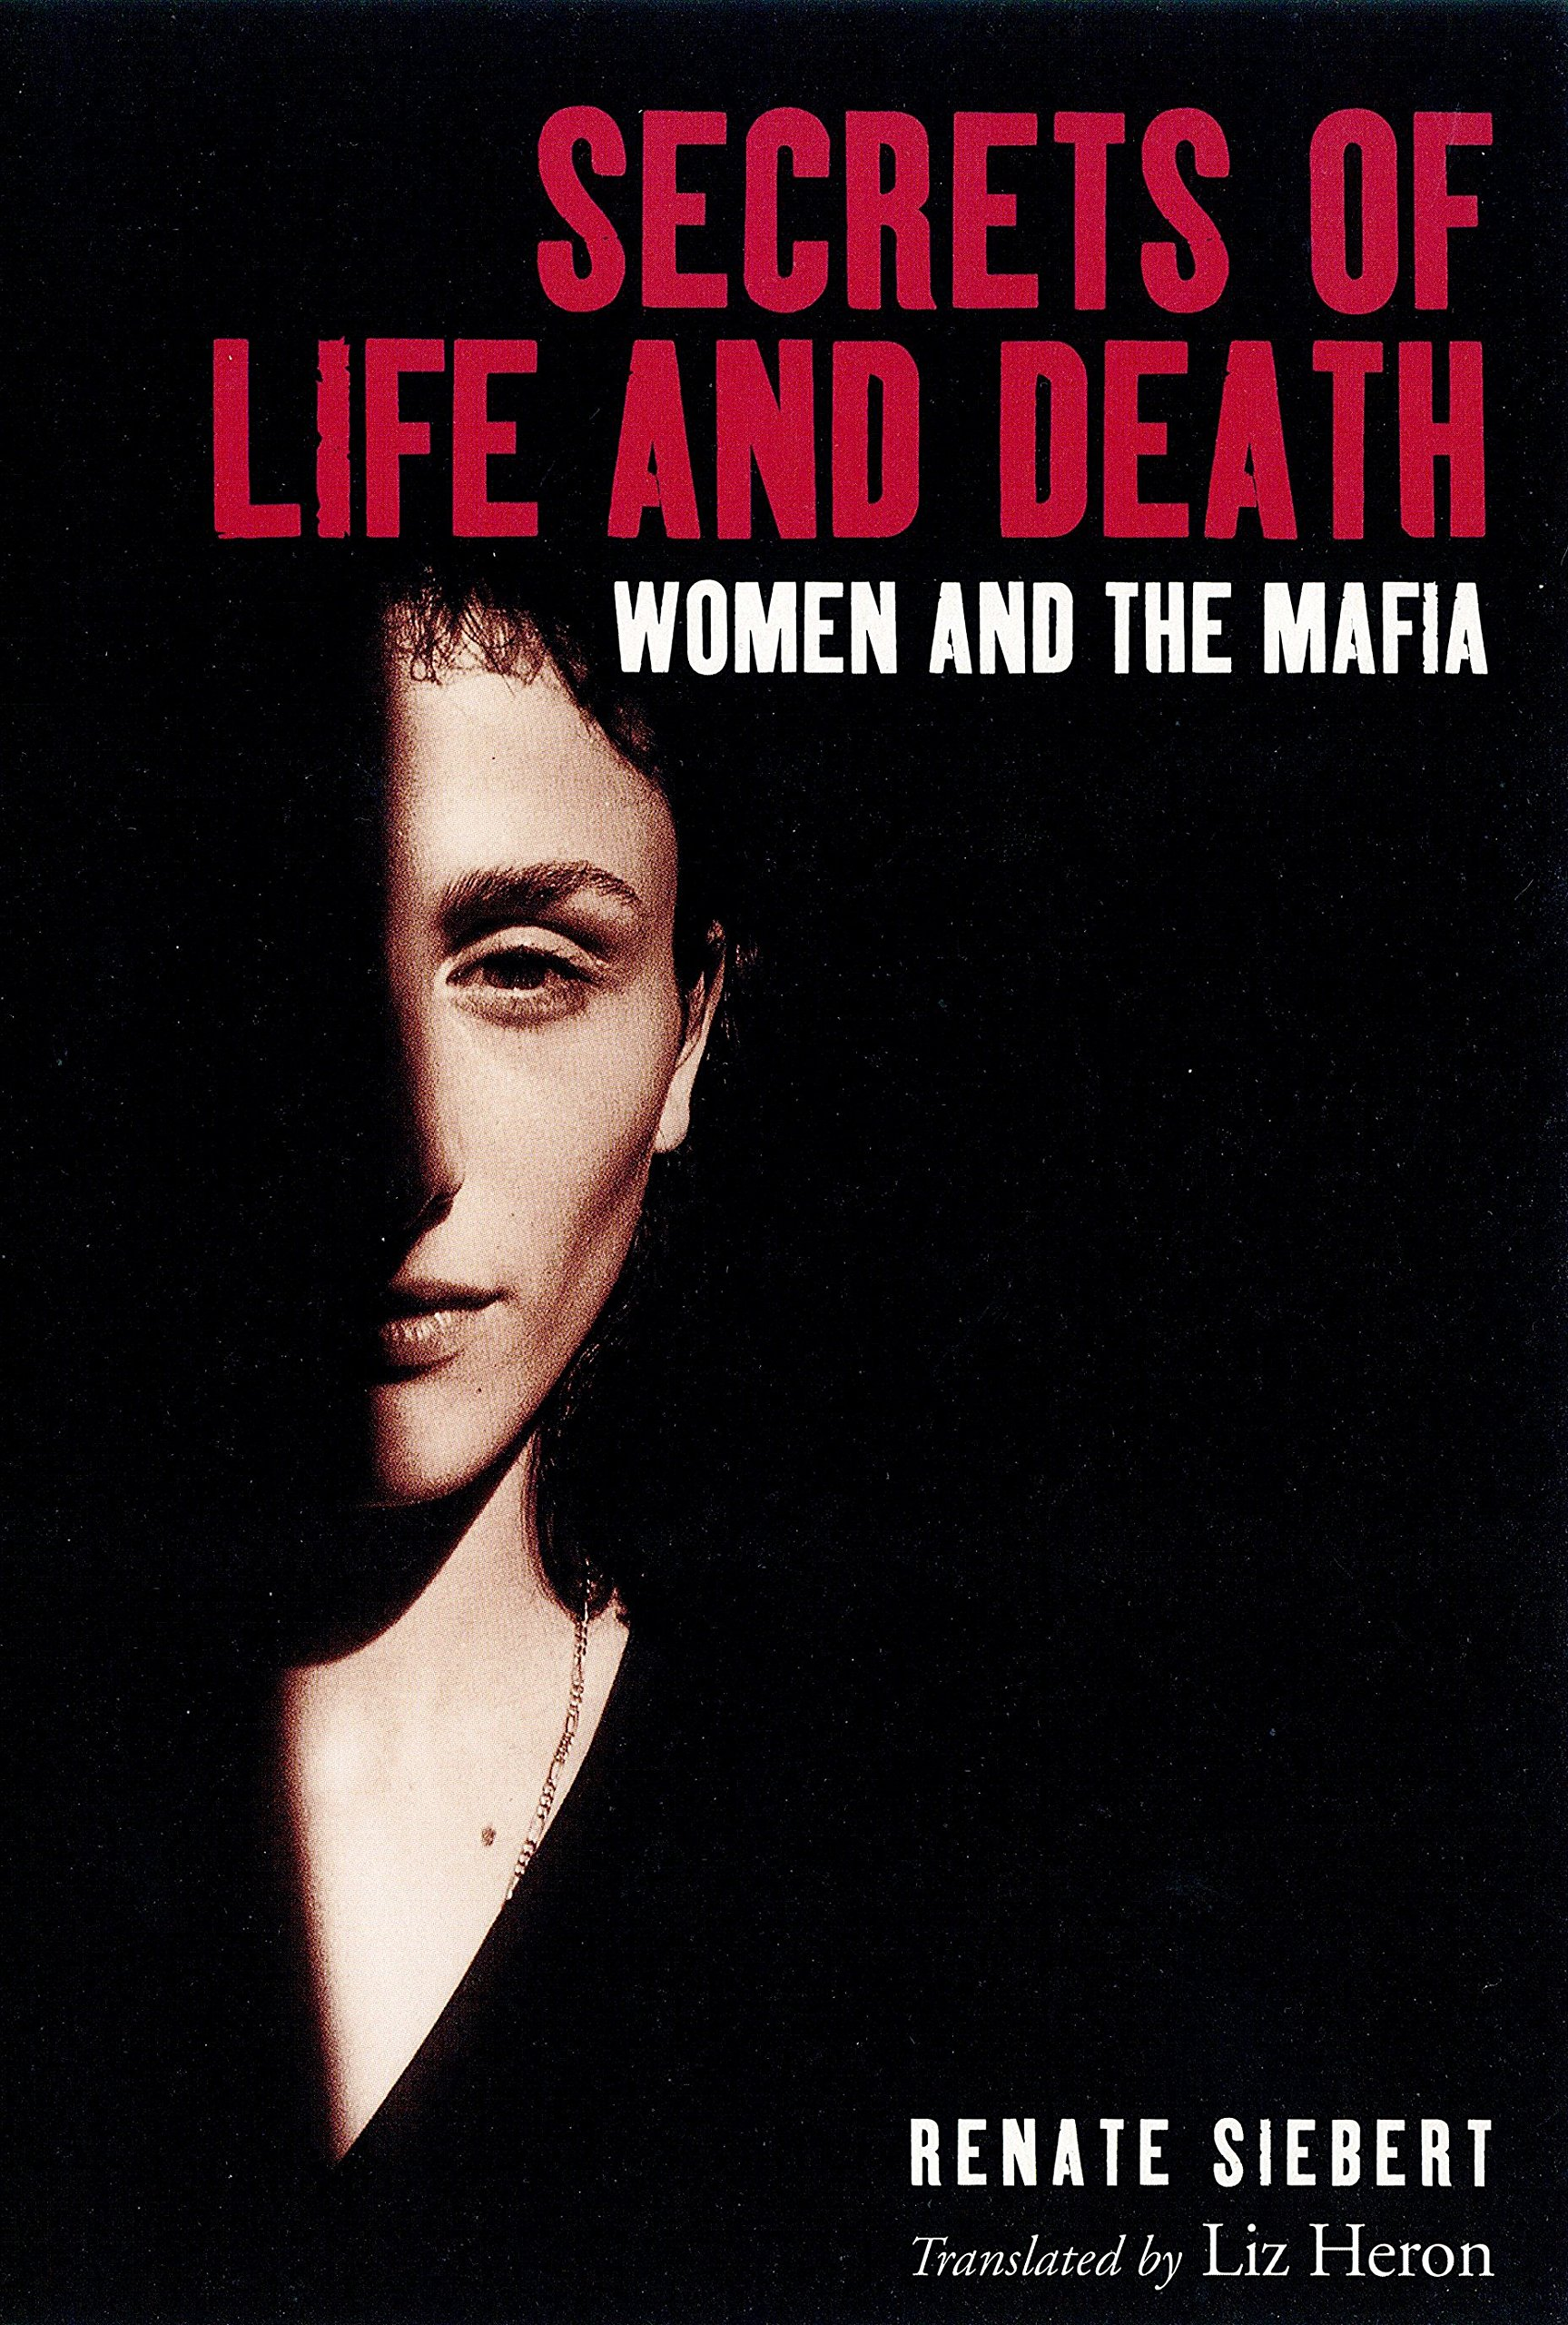 Secrets of Life and Death: Women and the Mafia: Renate Siebert, Liz Heron:  9781859840238: Amazon.com: Books